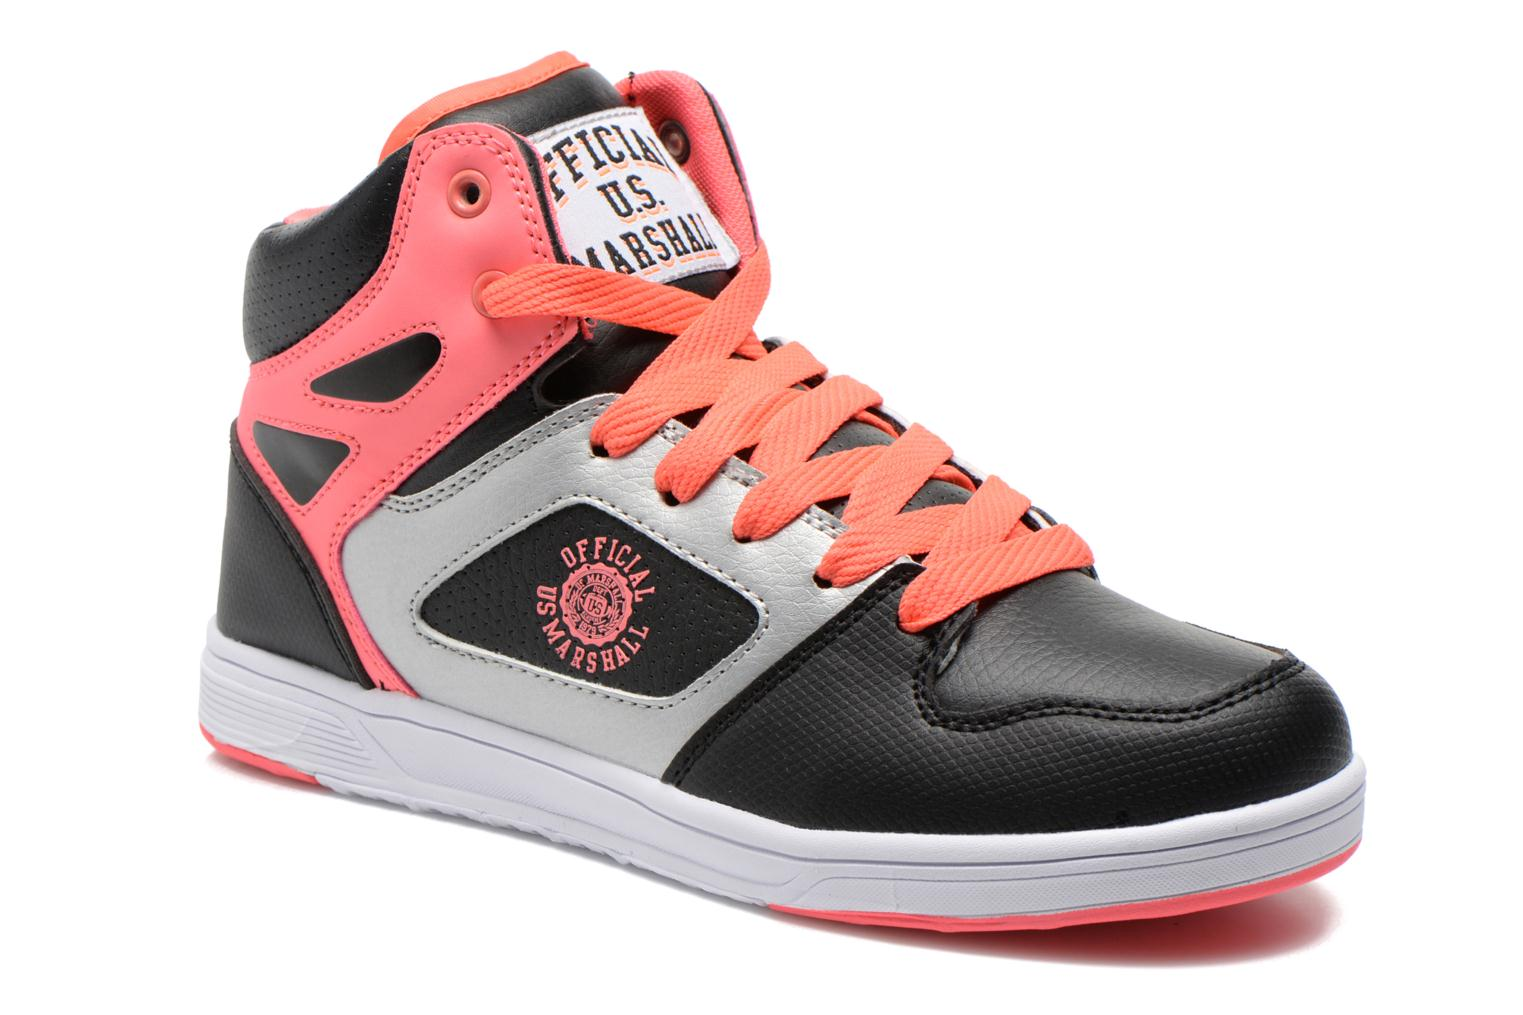 Sneakers Danna by US Marshall